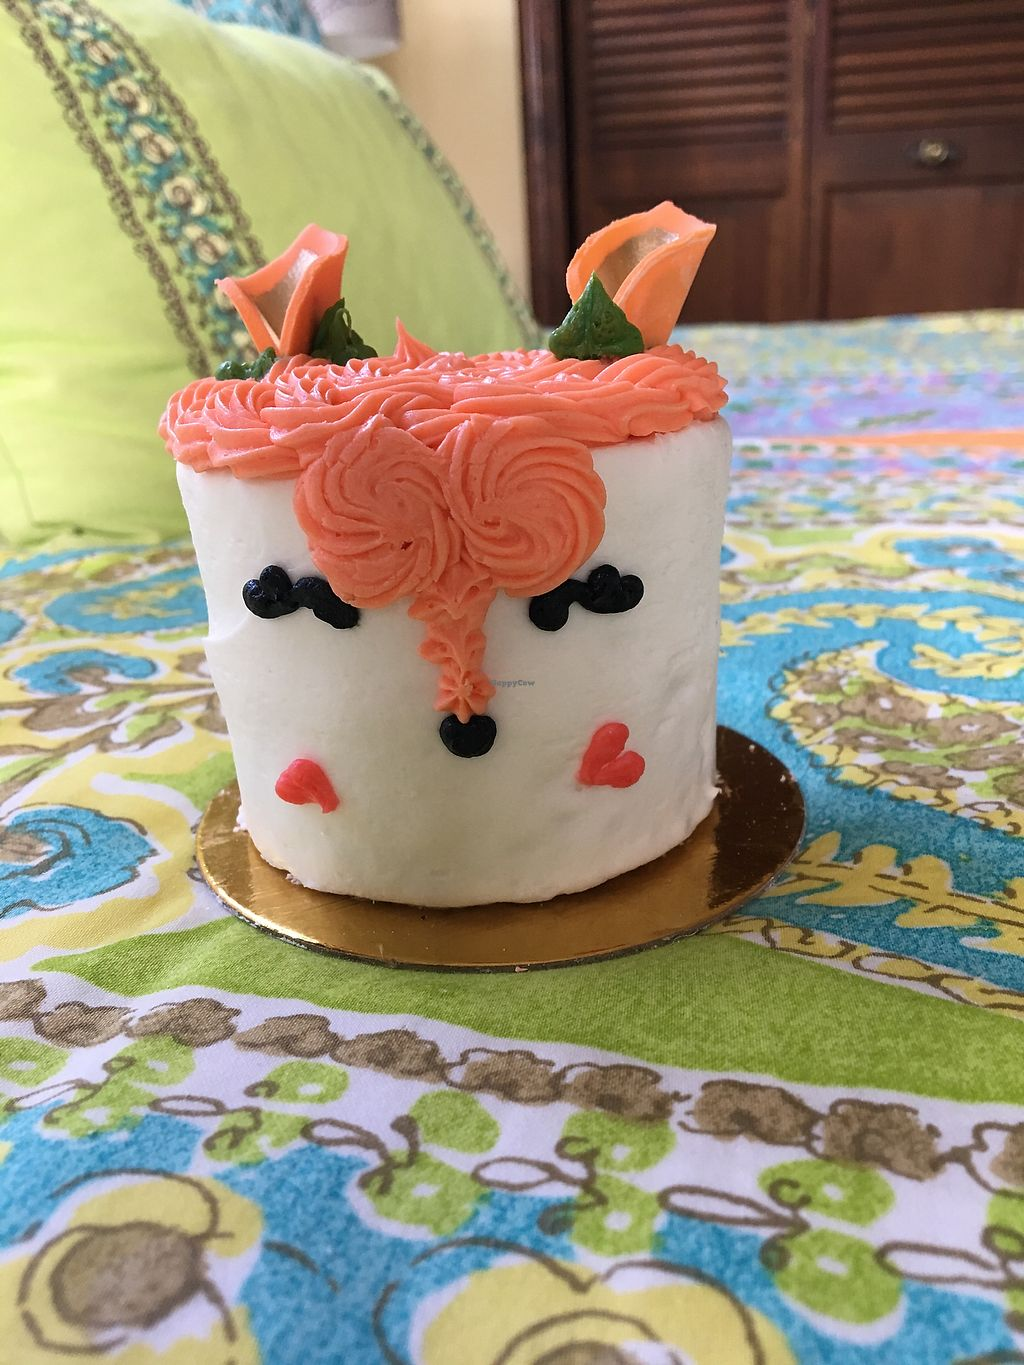 """Photo of Vegan Treats Bakery  by <a href=""""/members/profile/Thepennsyltuckyvegan"""">Thepennsyltuckyvegan</a> <br/>Fox Confetti Cake <br/> April 8, 2018  - <a href='/contact/abuse/image/6784/382681'>Report</a>"""